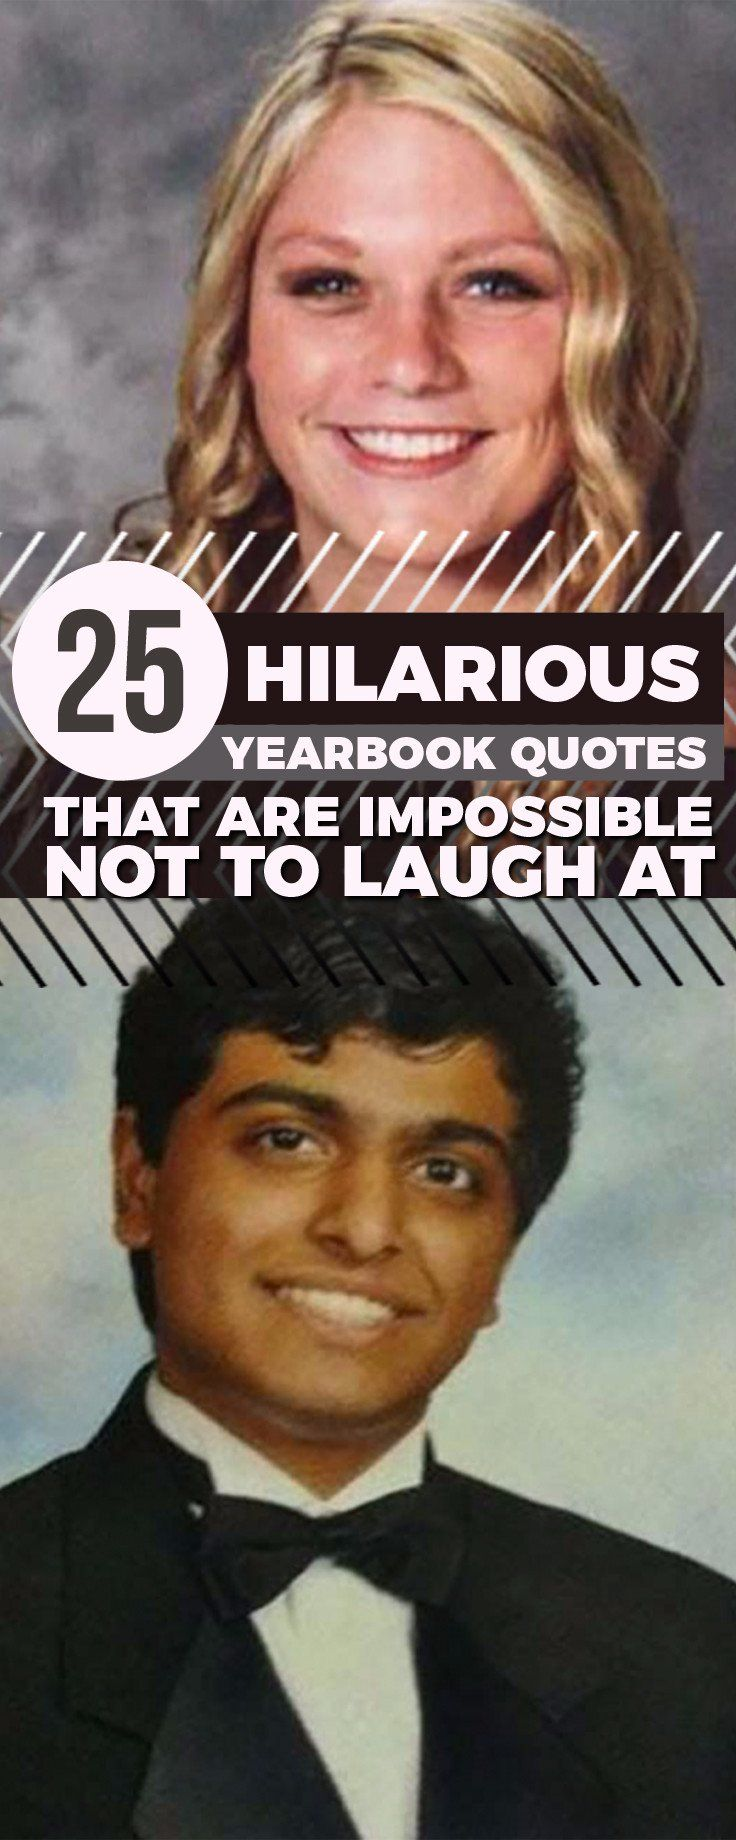 25 Hilarious Yearbook Quotes That Are Impossible Not To Laugh At Yearbook Quotes Hilarious Sneakers Men Fashion